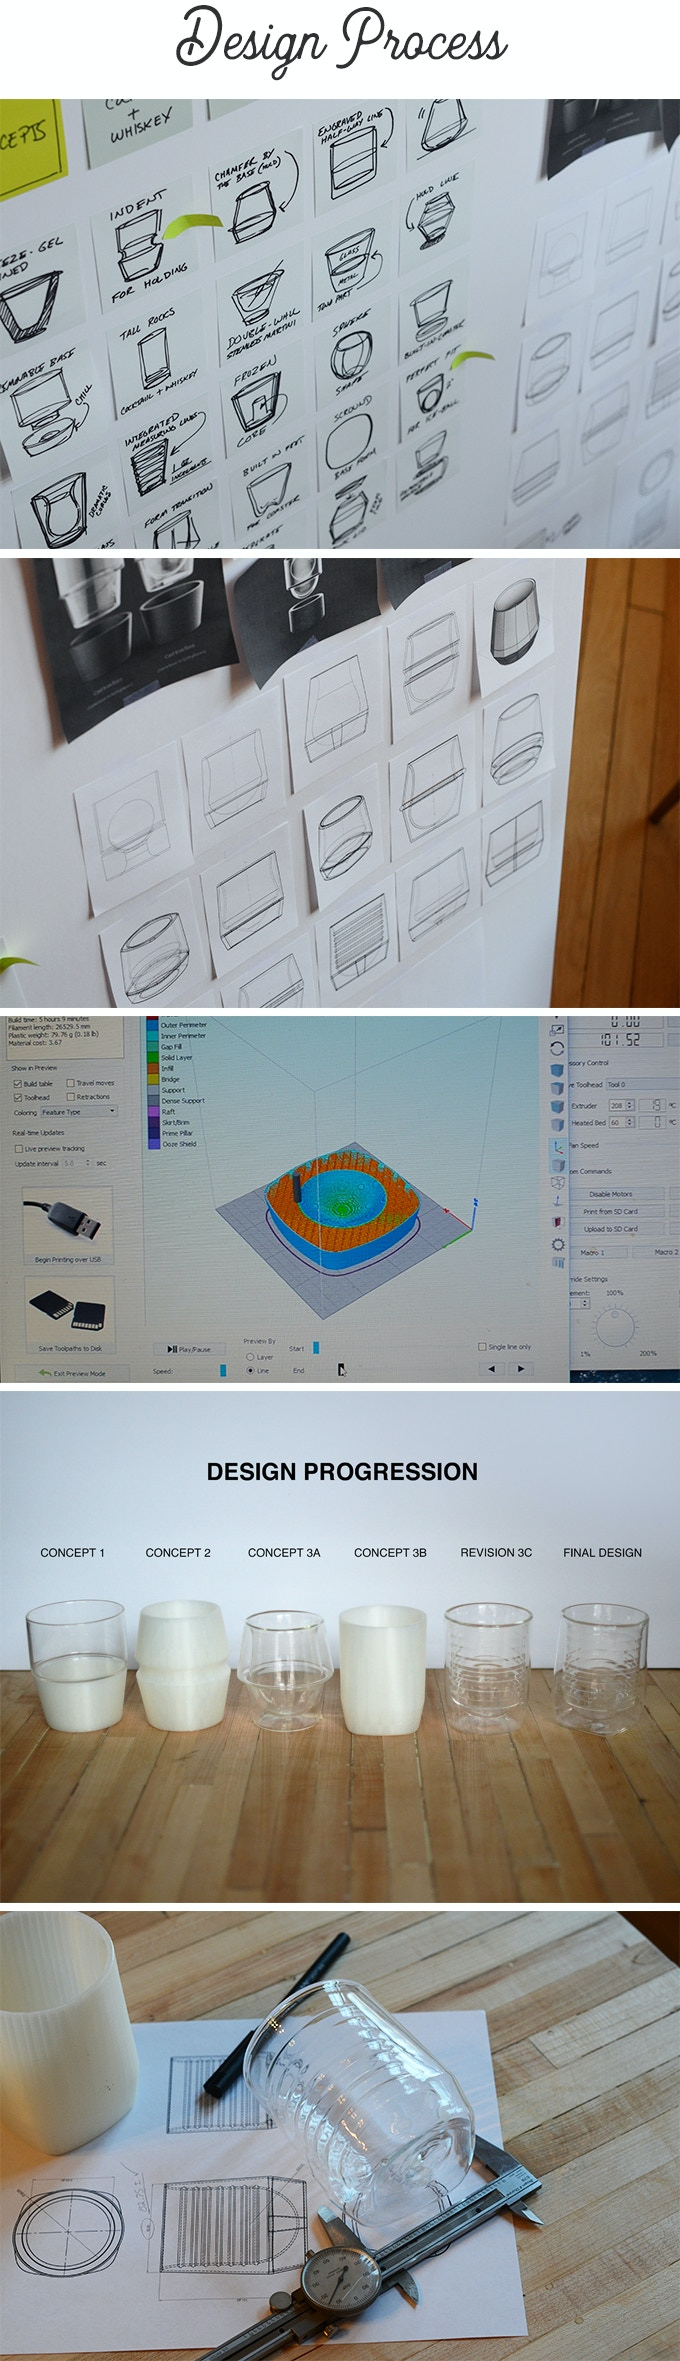 Design Process : From conception through production